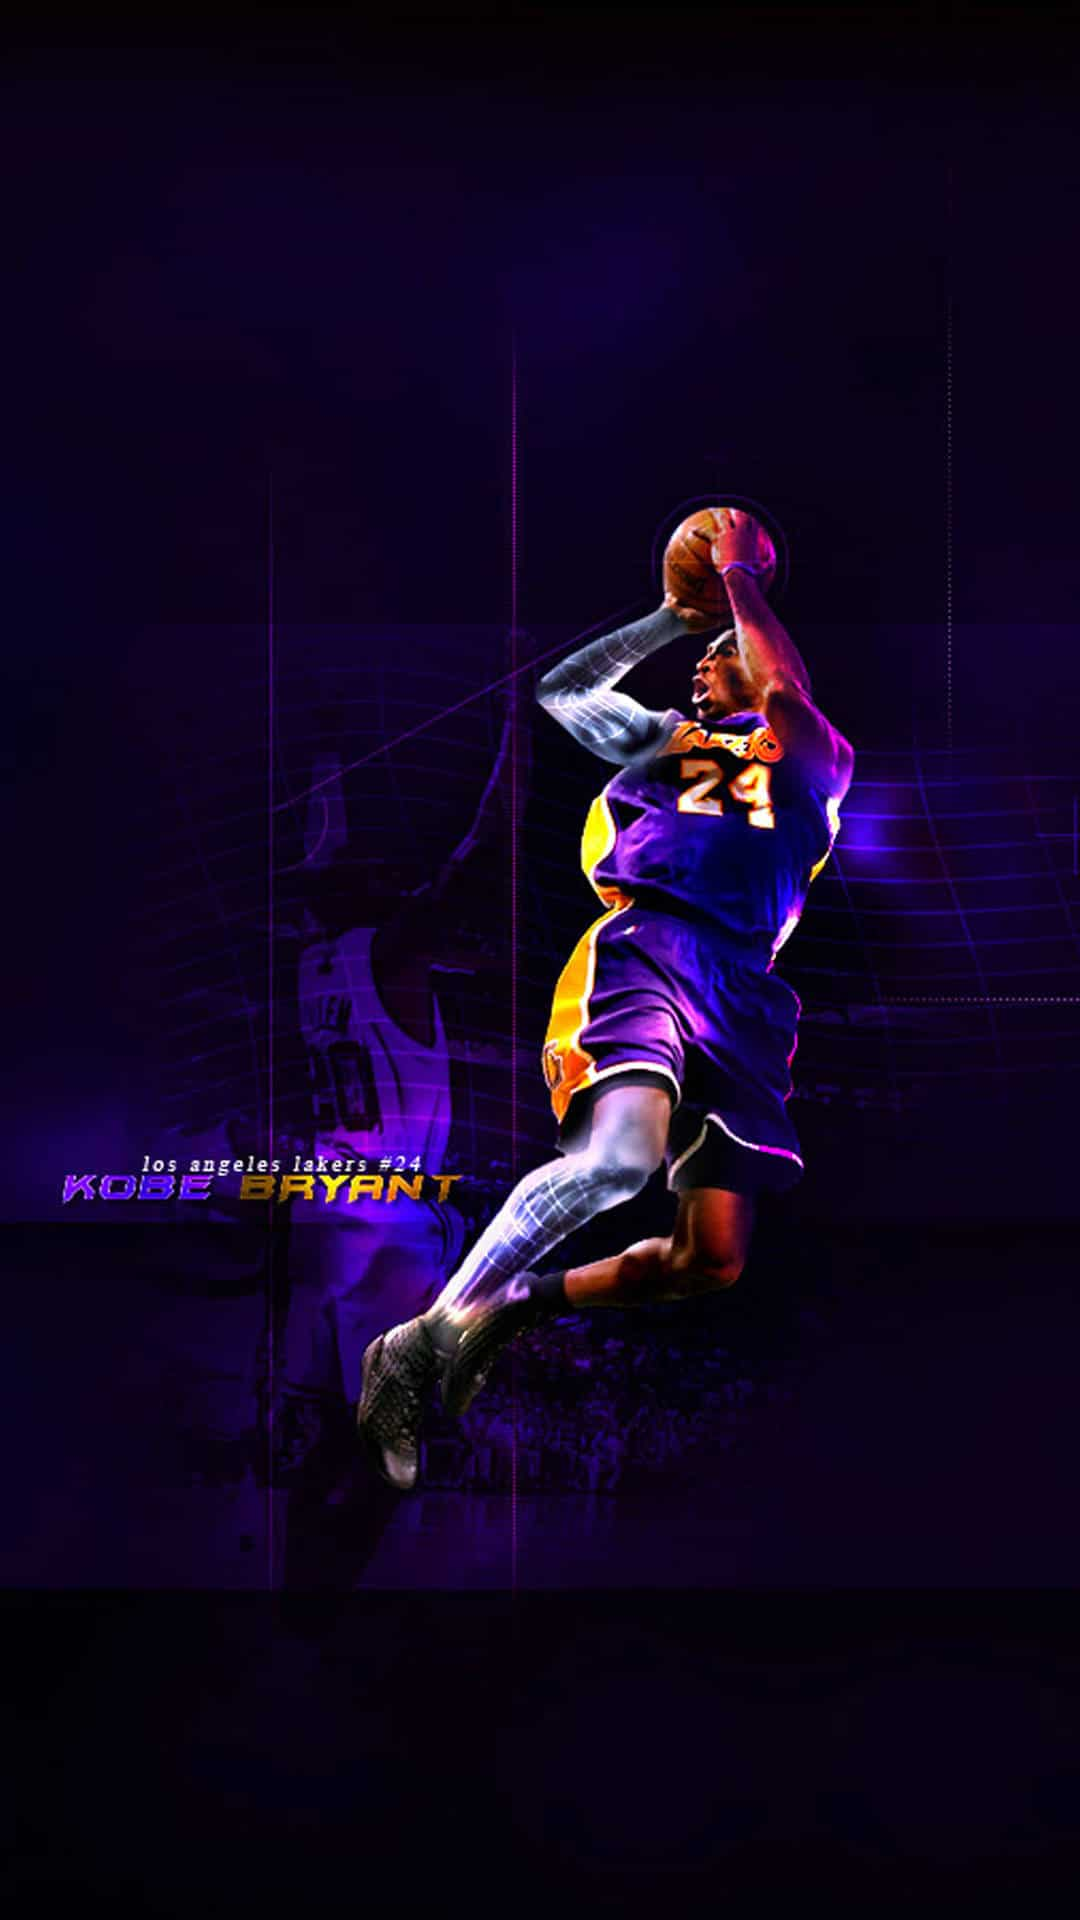 kobe bryant wallpaper 2016 - photo #32